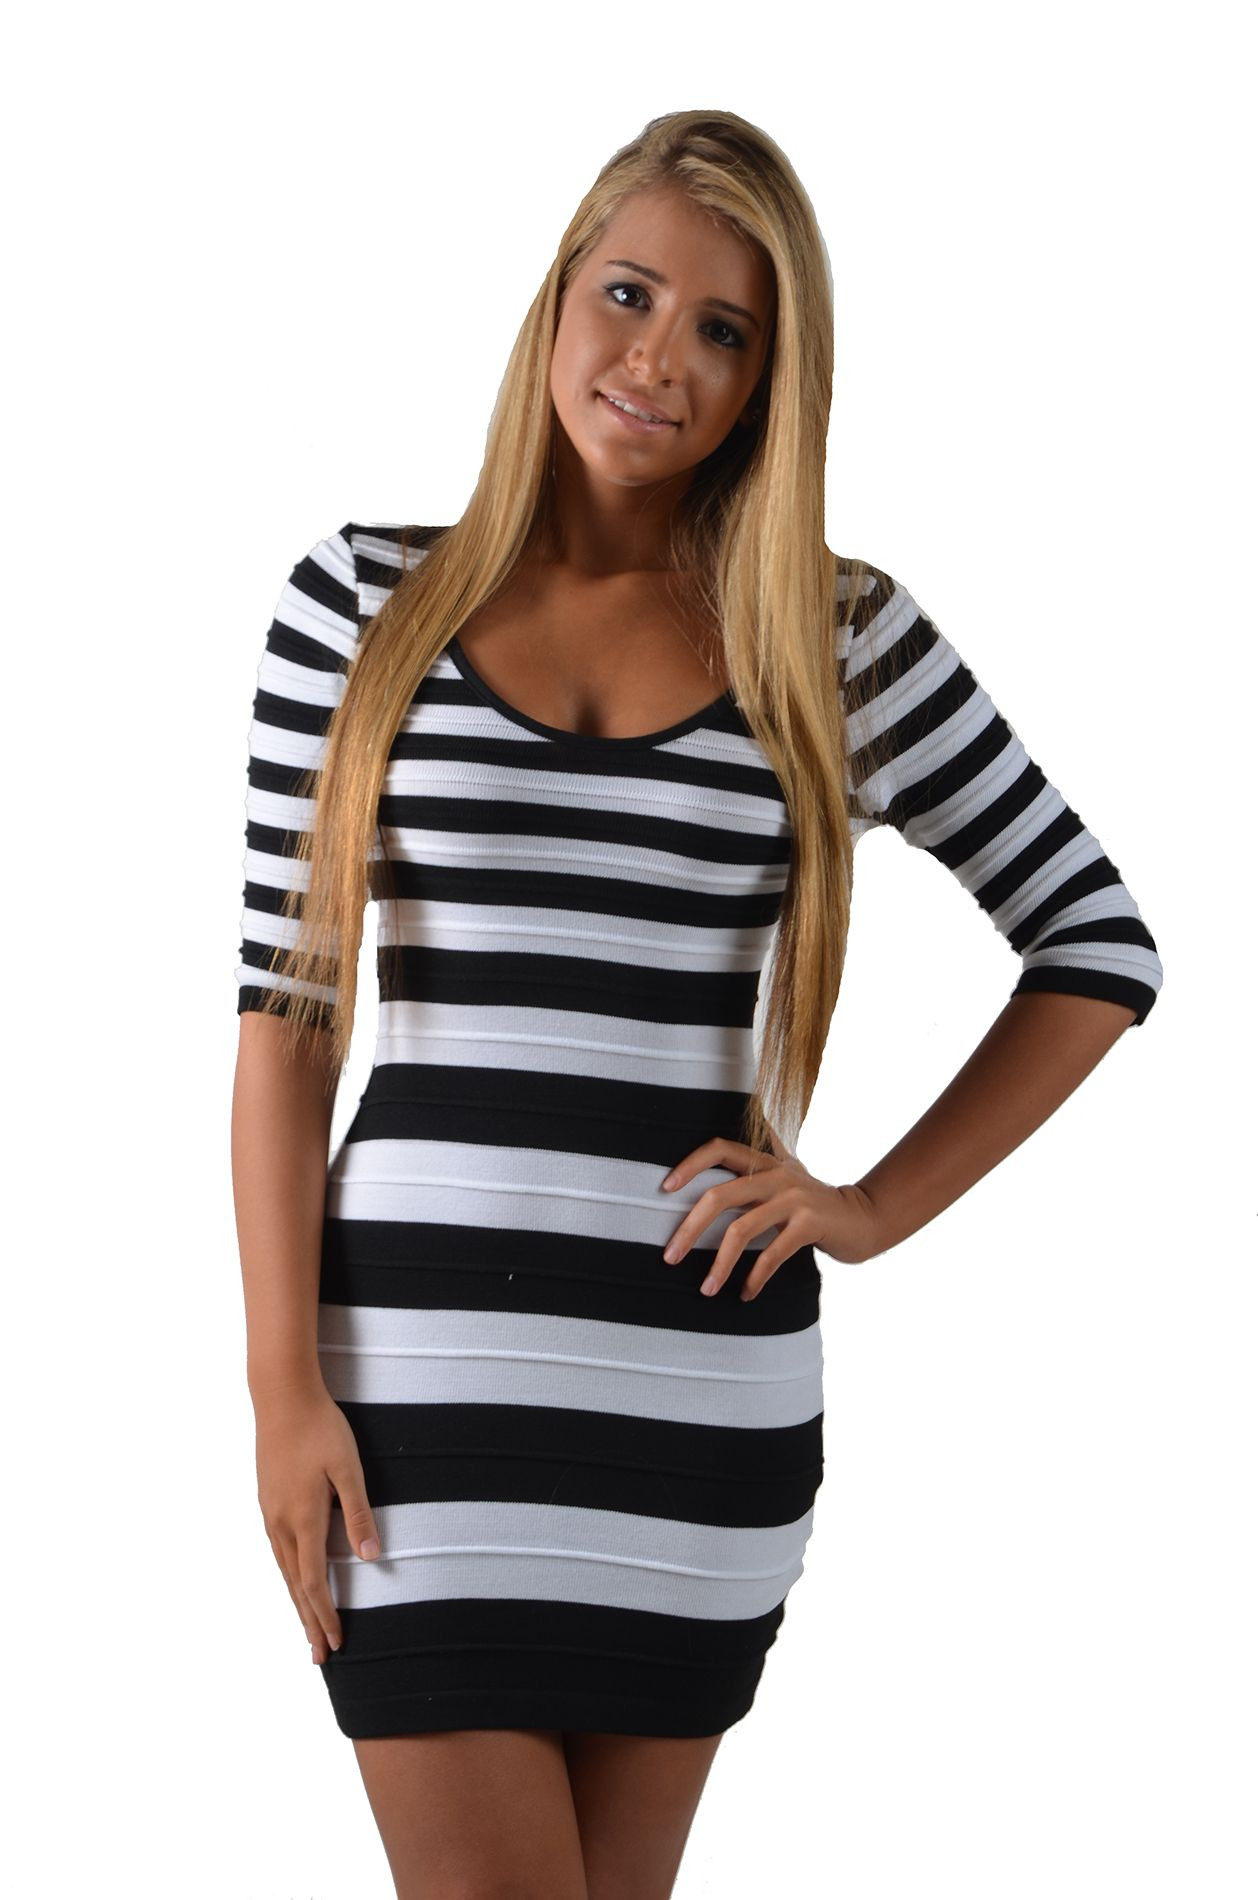 de789ab69e0 UsTrendy Black and White 3 4-Sleeve Knit Fitted Striped Sweater Dress